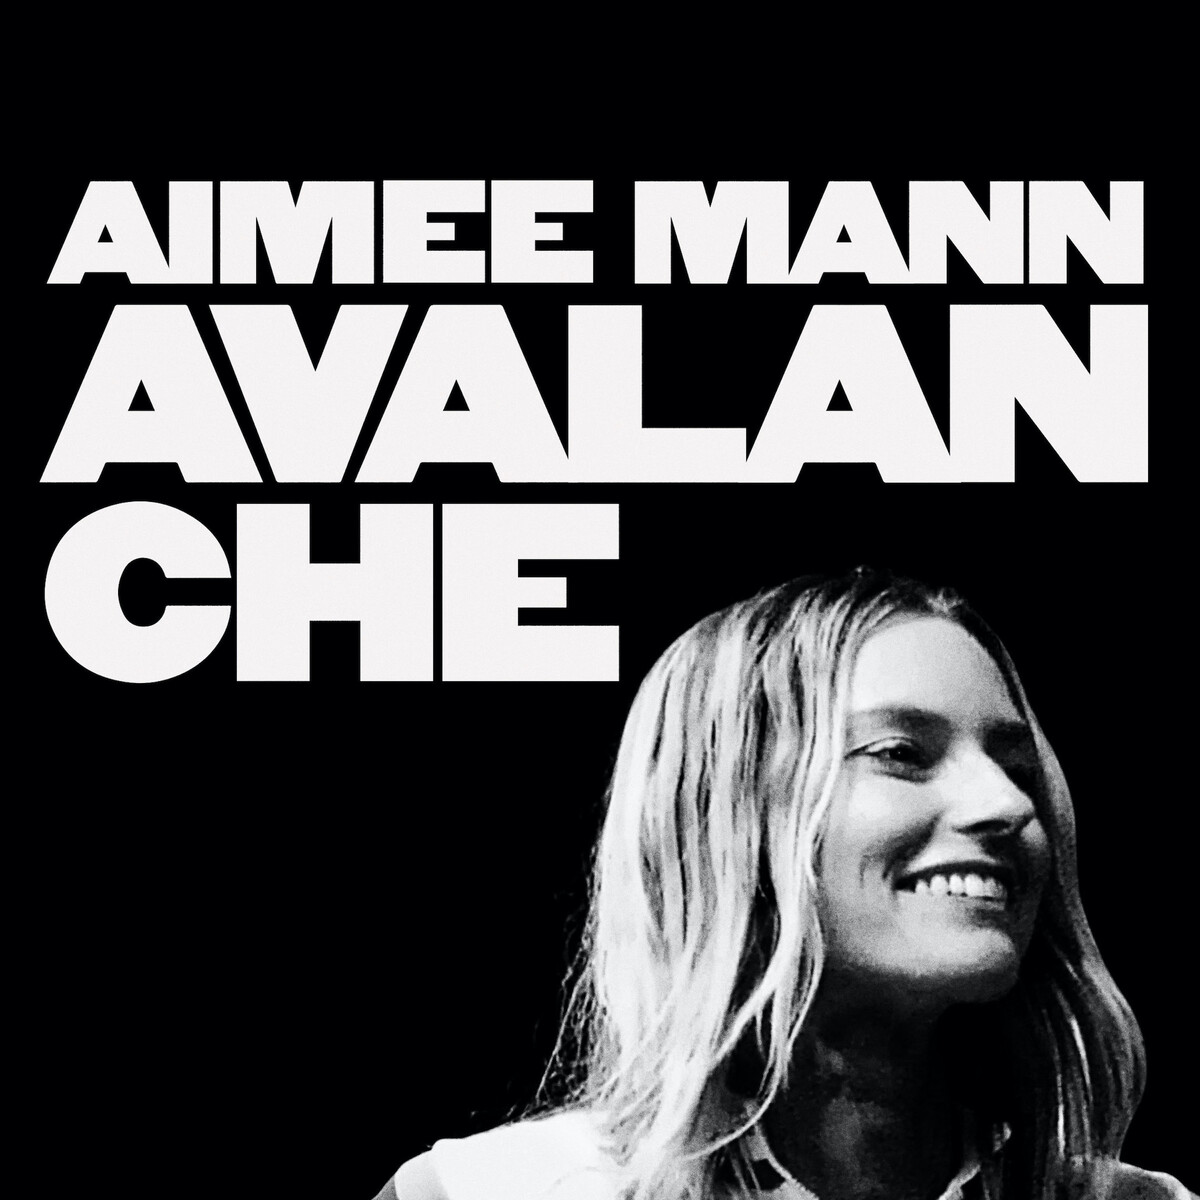 Avalanche by Aimee Mann